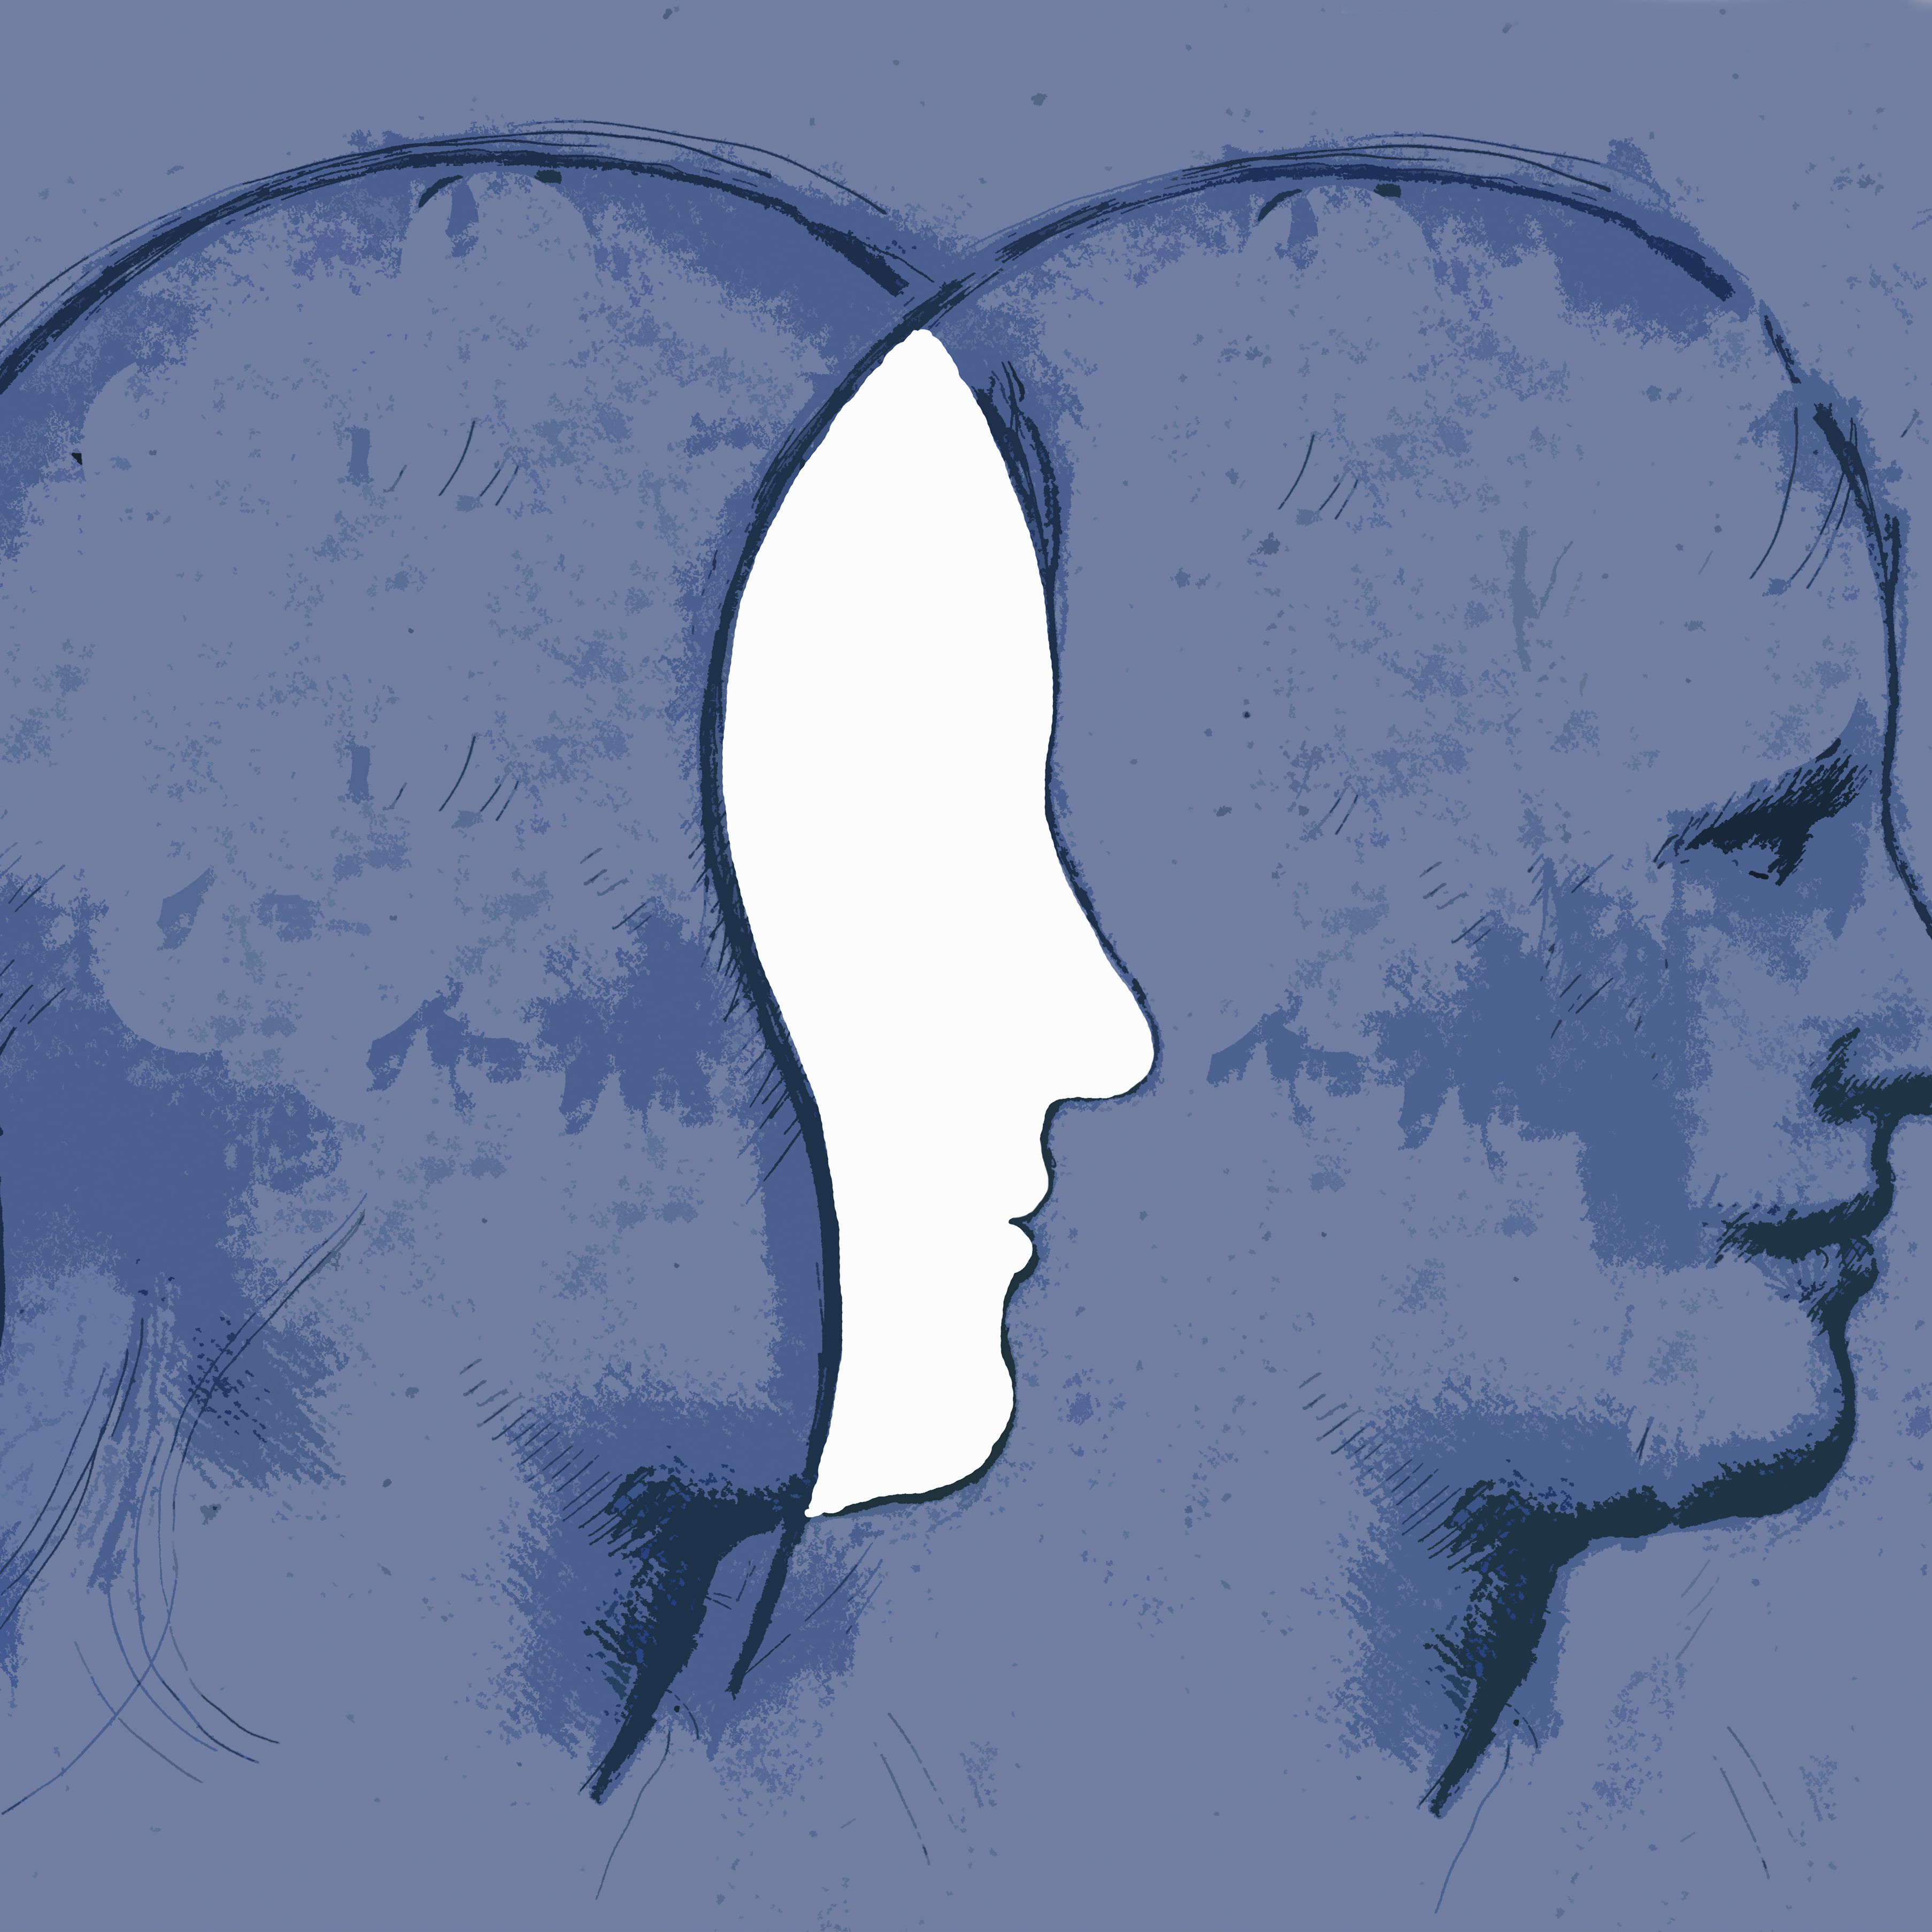 Is There a Difference Between Conscience and Conscious?